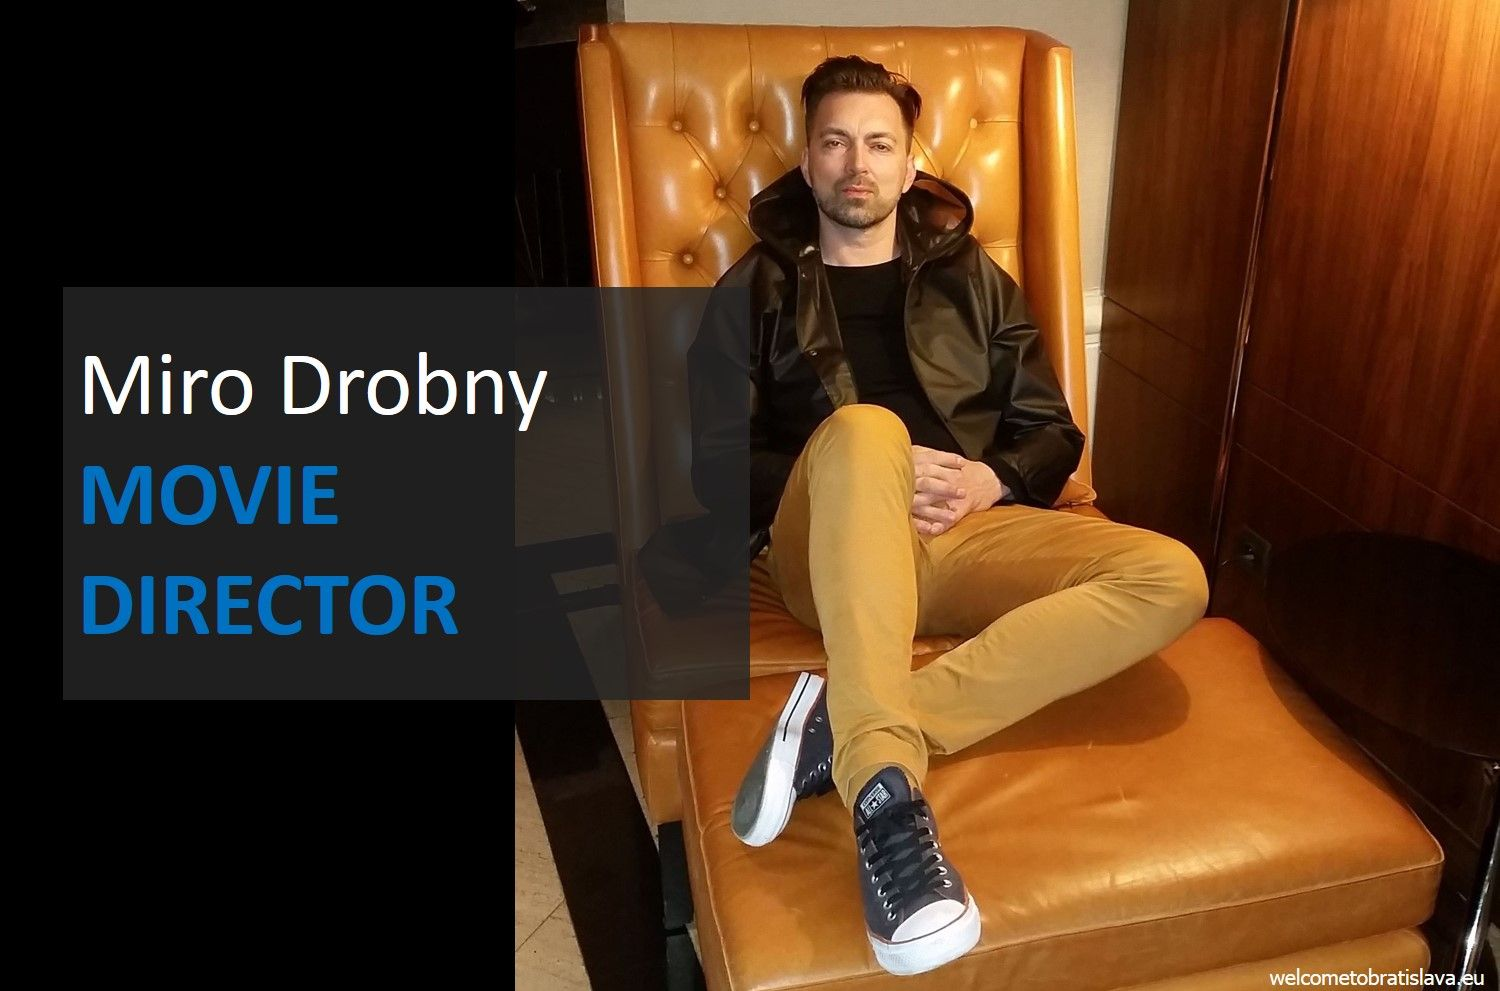 Read the story of Miro Drobny here